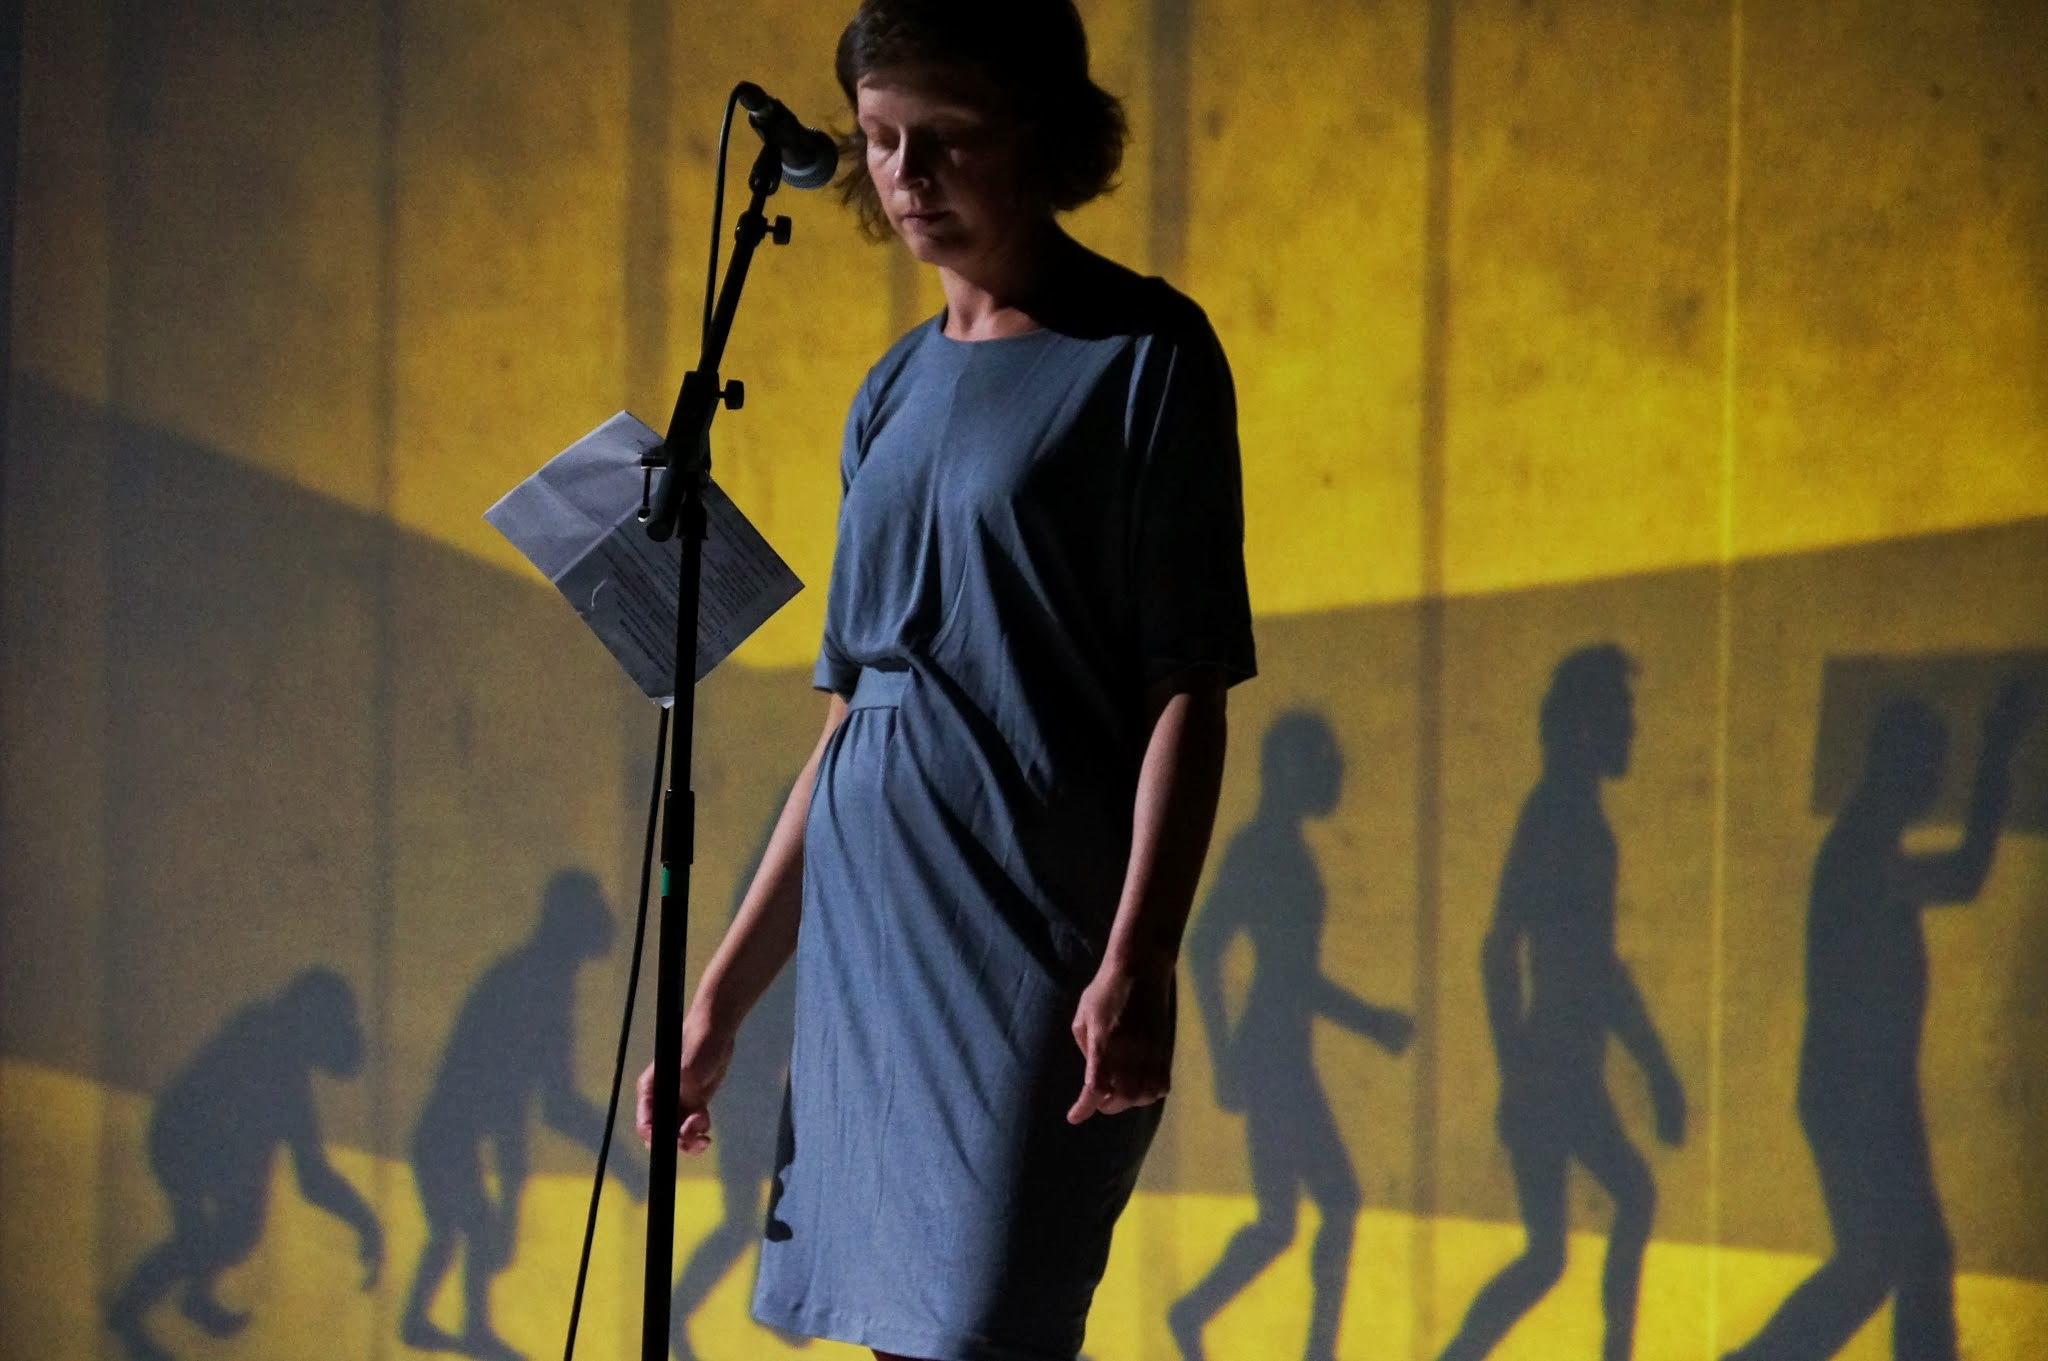 Performer Leentje Van de Cruys wearing a grey dress, stood at a microphone (The Good, the God, and the Guillotine).